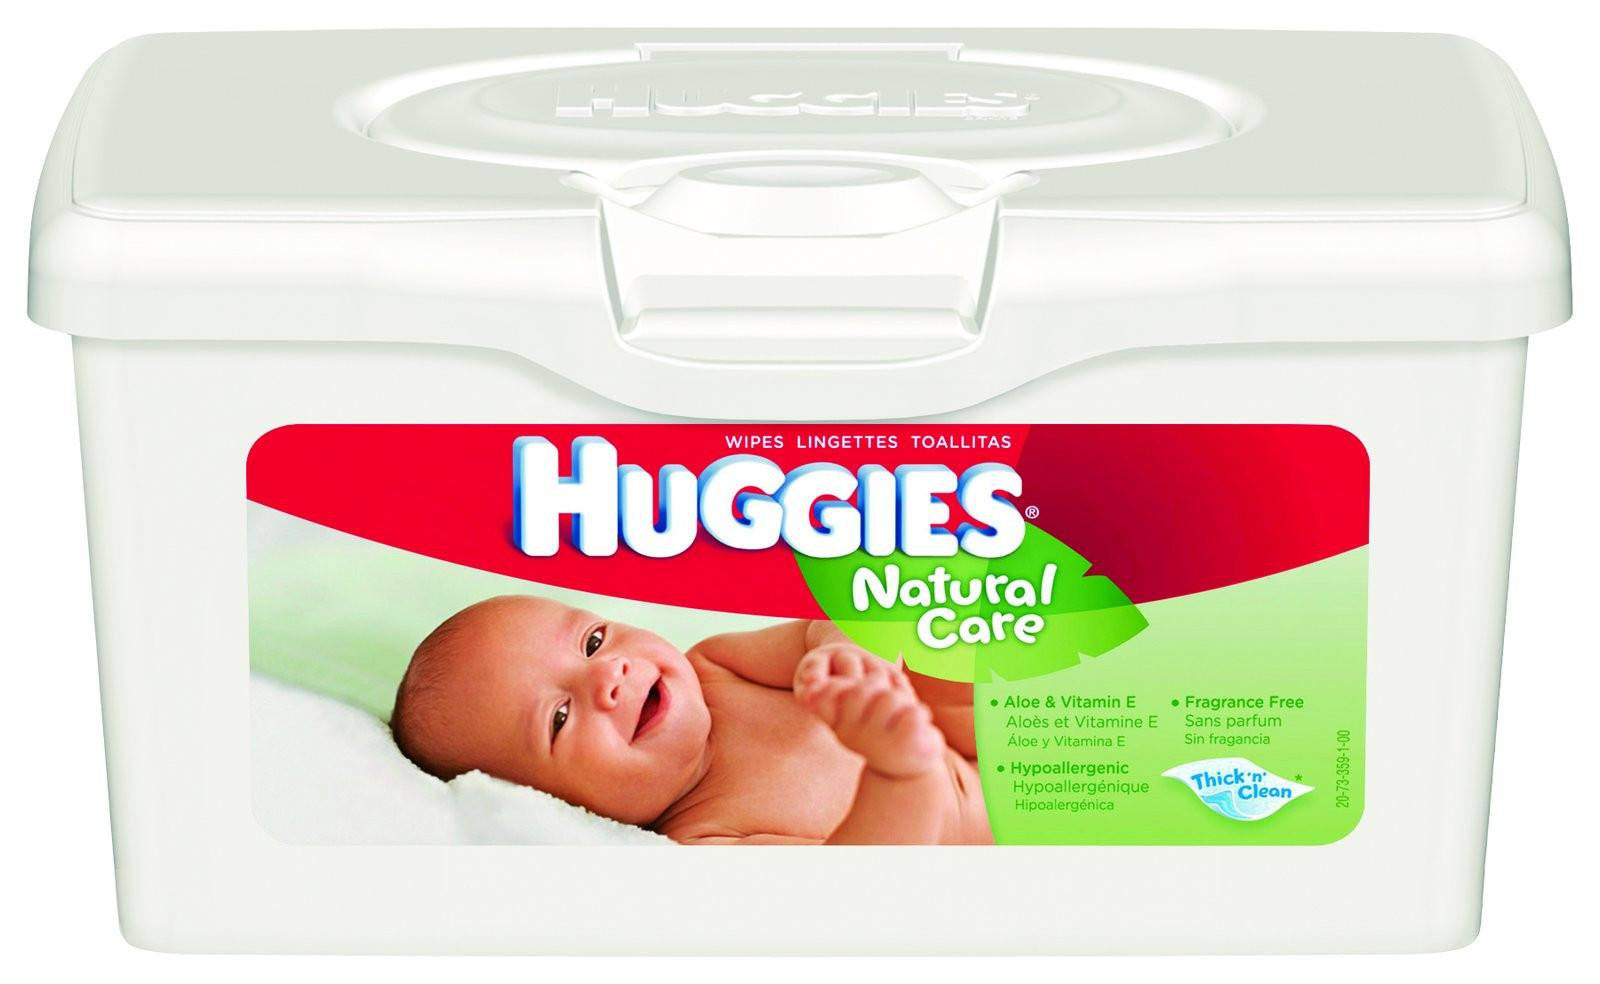 Buy Huggies Natural Care Wipes by Kimberly Clark | SDVOSB - Mountainside Medical Equipment